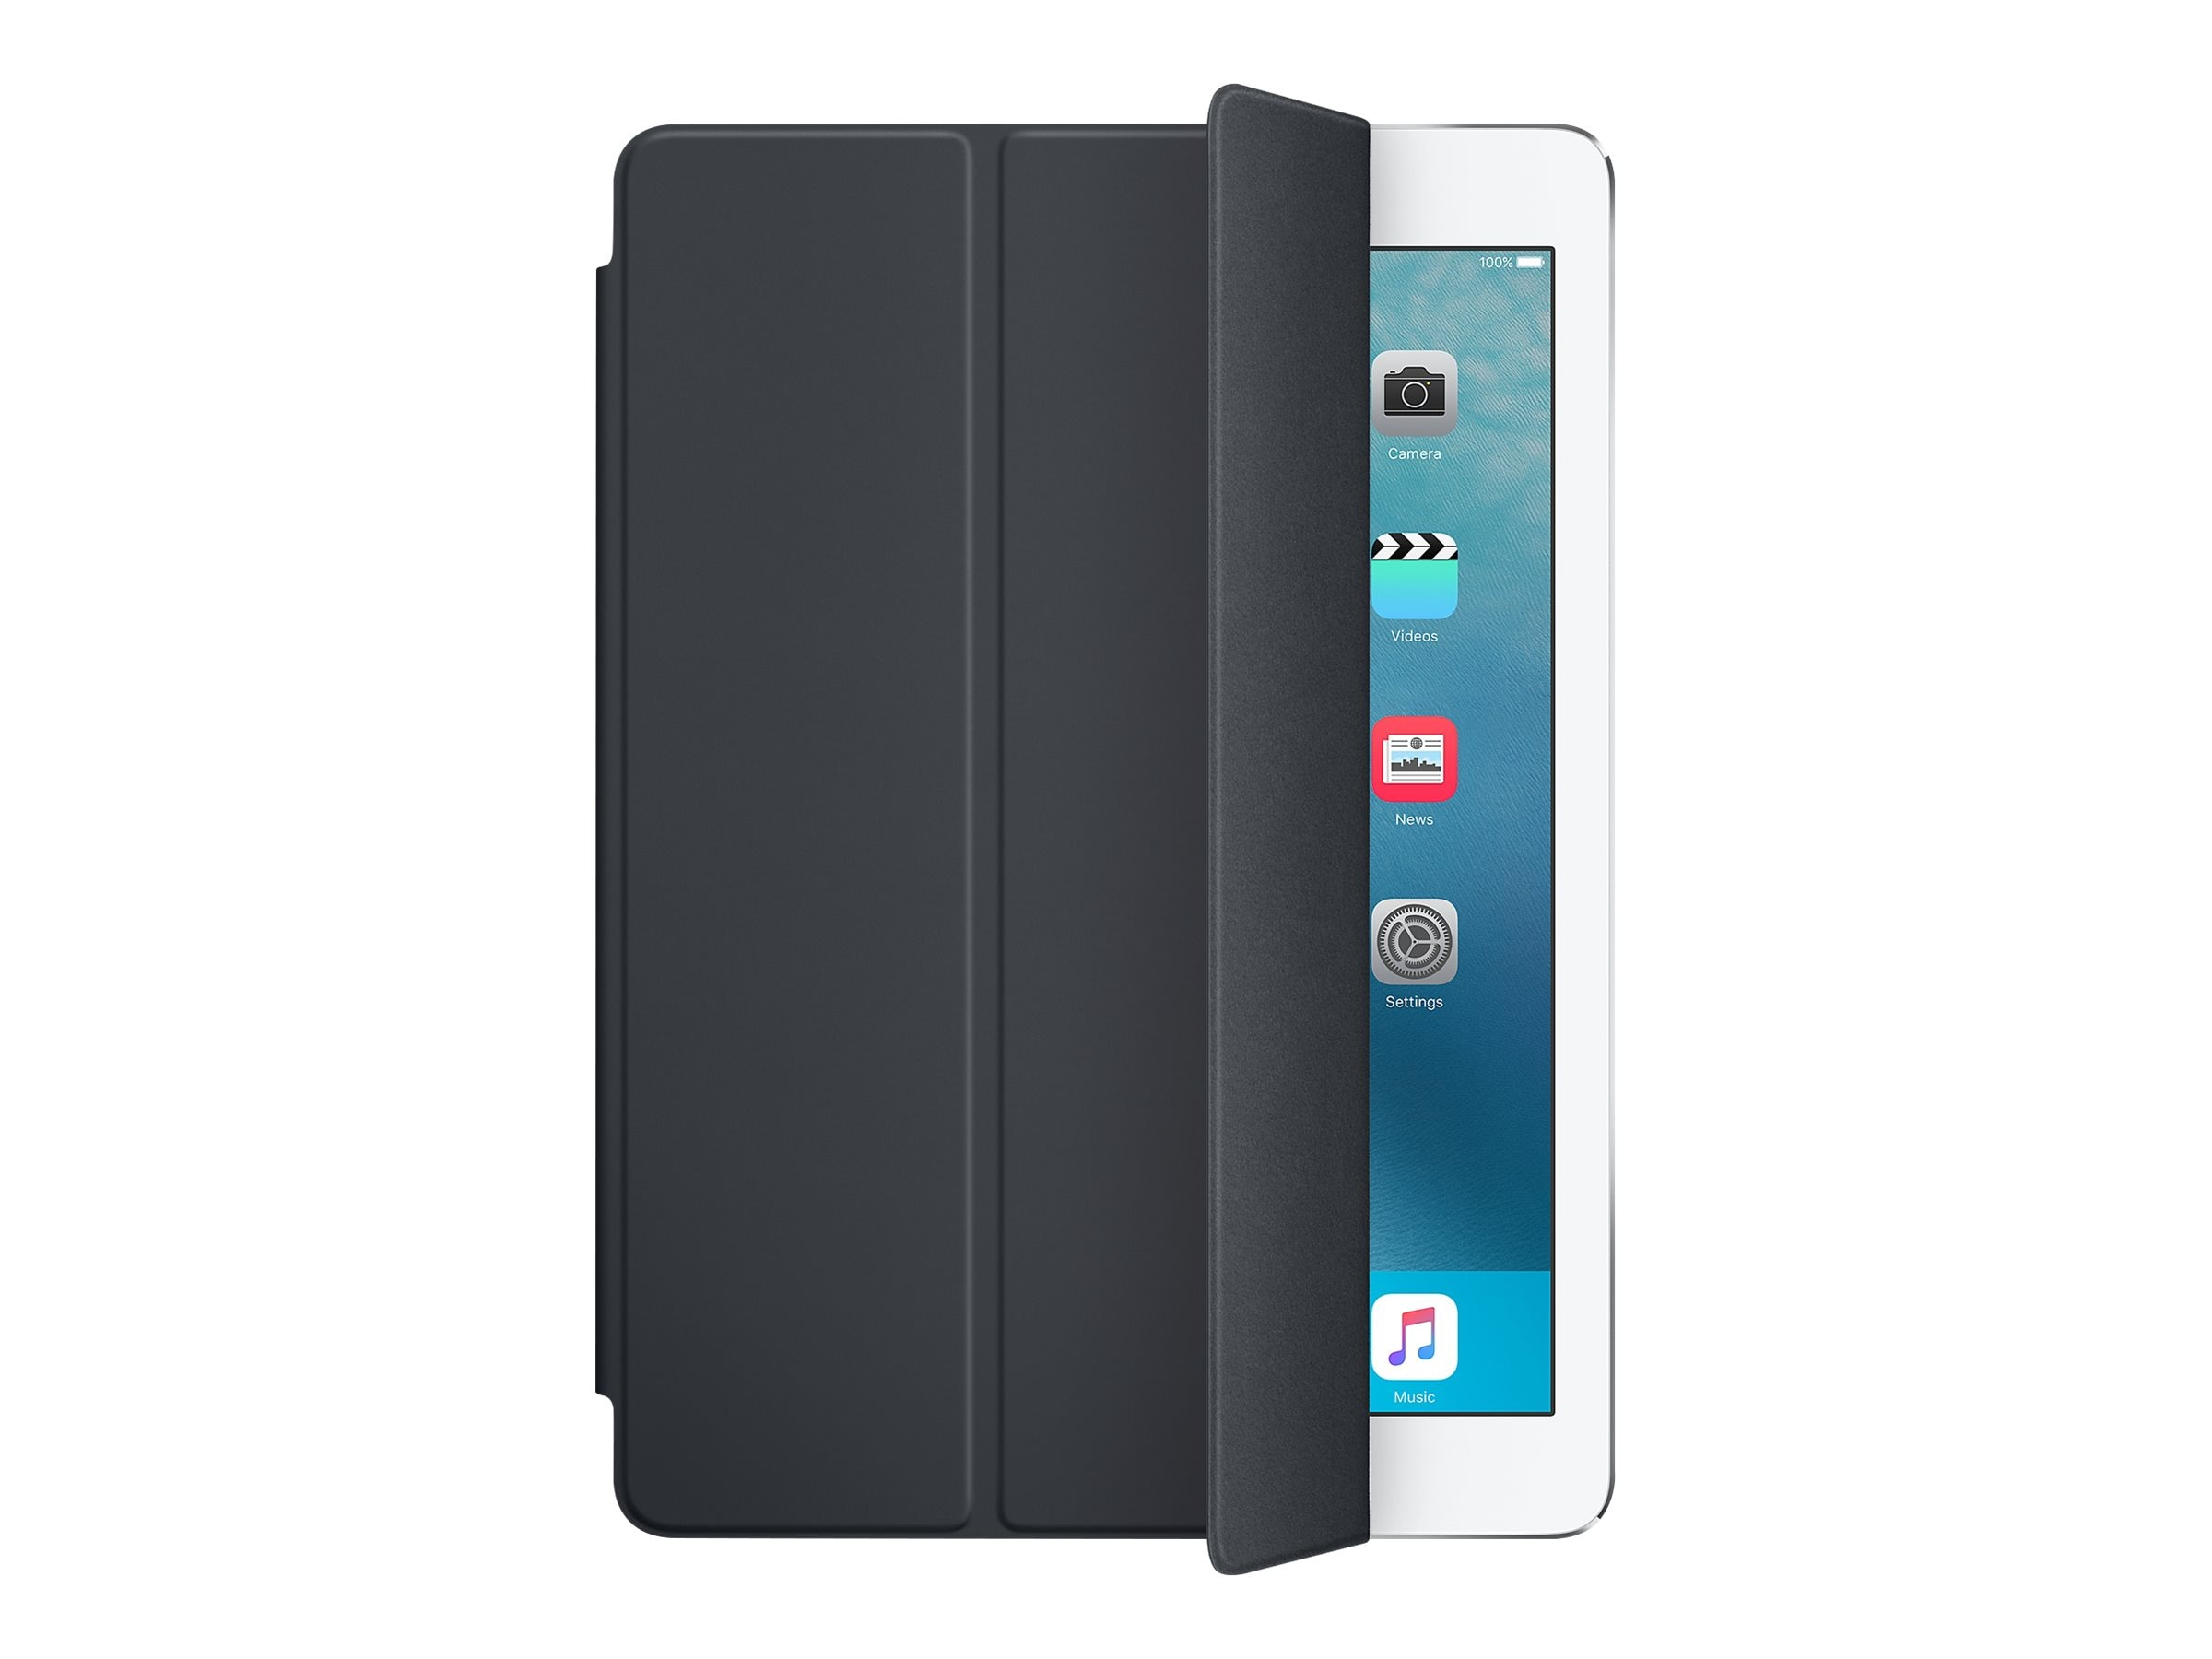 Apple Smart Cover for iPad Pro 9.7, Charcoal Gray, MM292AM/A, 31805750, Carrying Cases - Tablets & eReaders